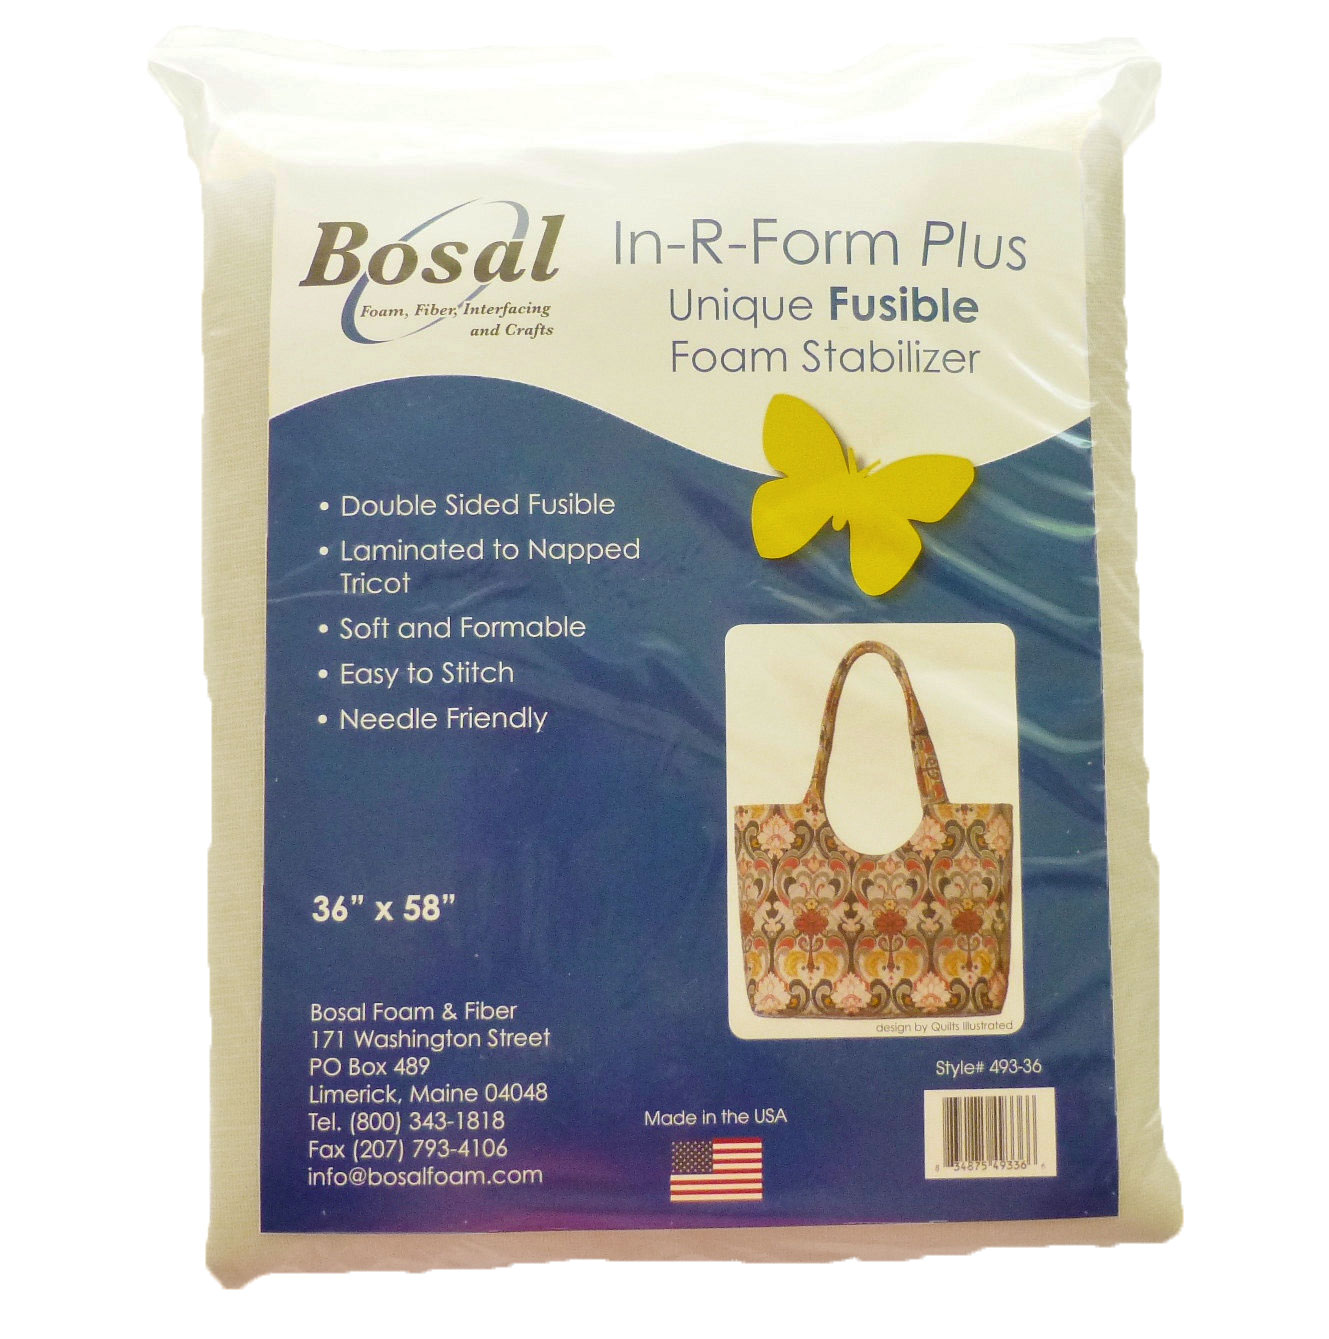 Bosal In-R-Form Plus 36 x 58